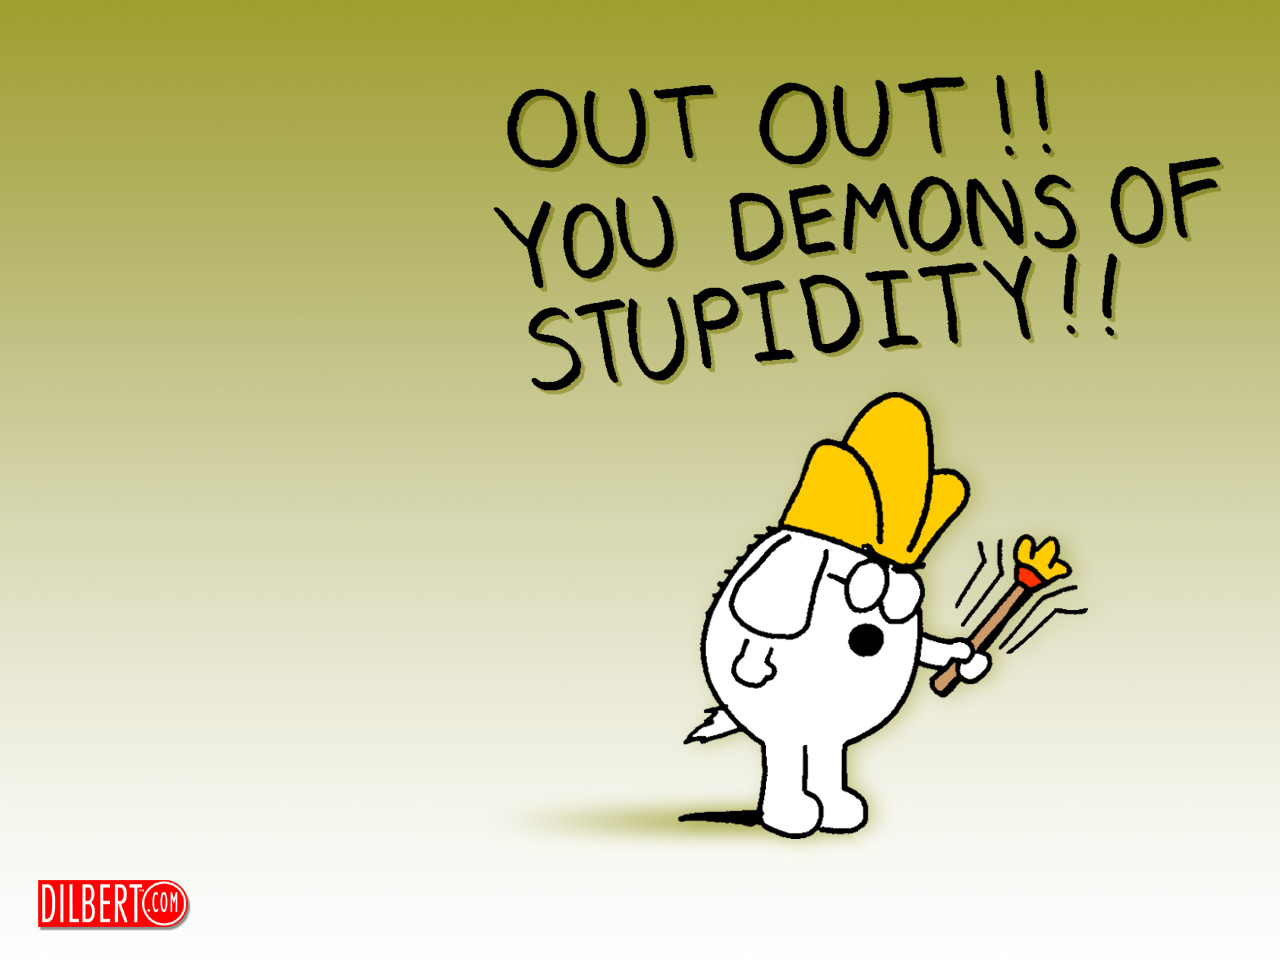 Click image for larger version  Name:dilbert_demons_1280x960.jpg Views:1185 Size:138.6 KB ID:15994